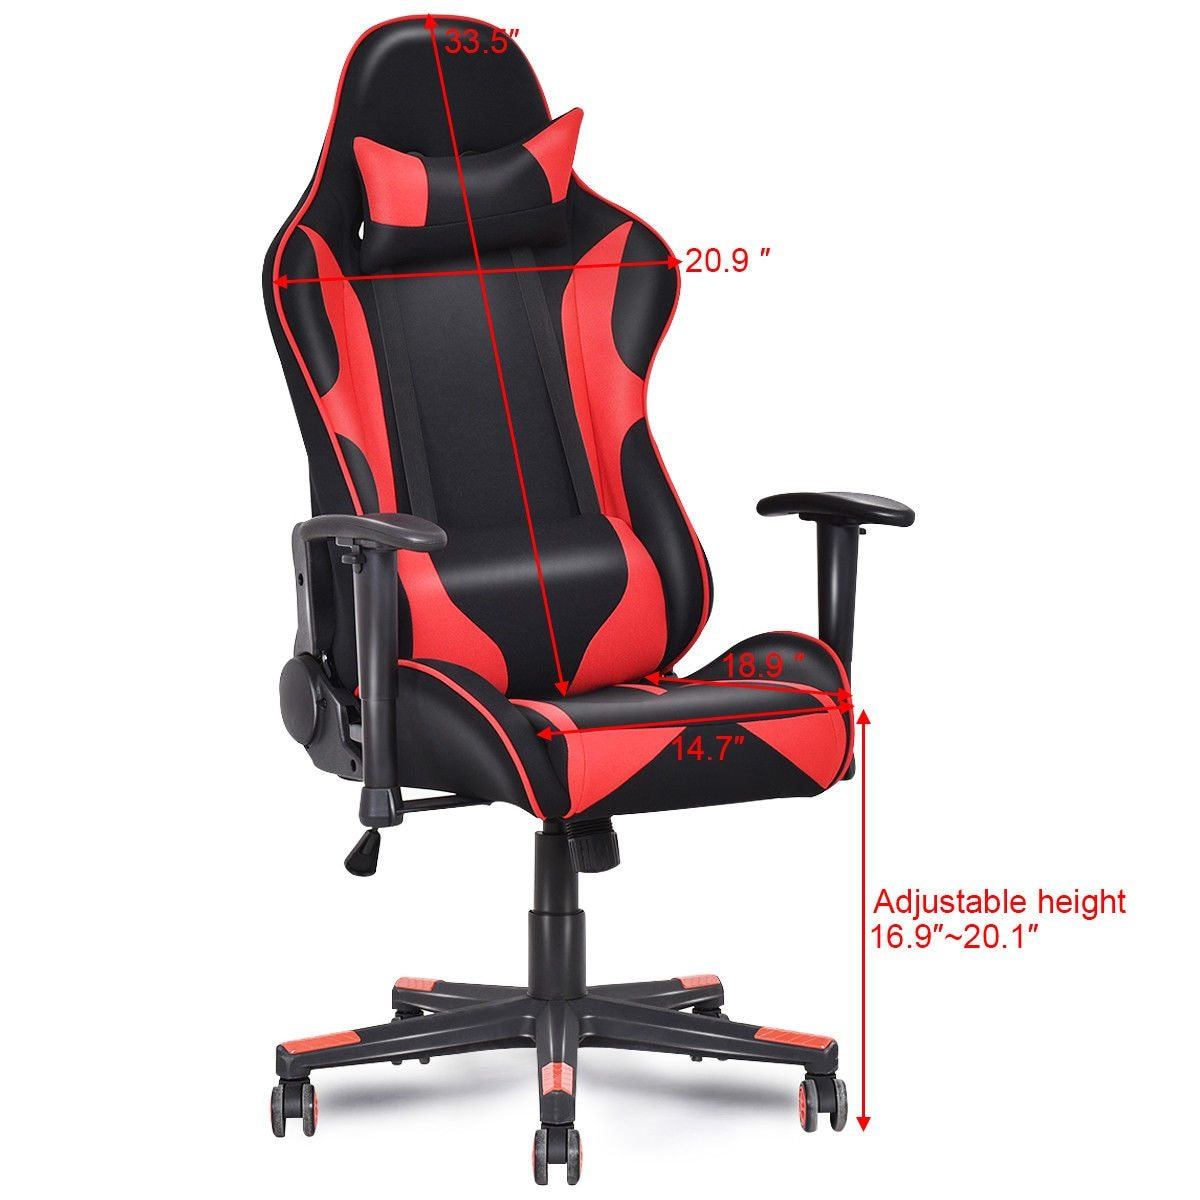 Black & Red Ergonomic Racing Style Gaming Chair